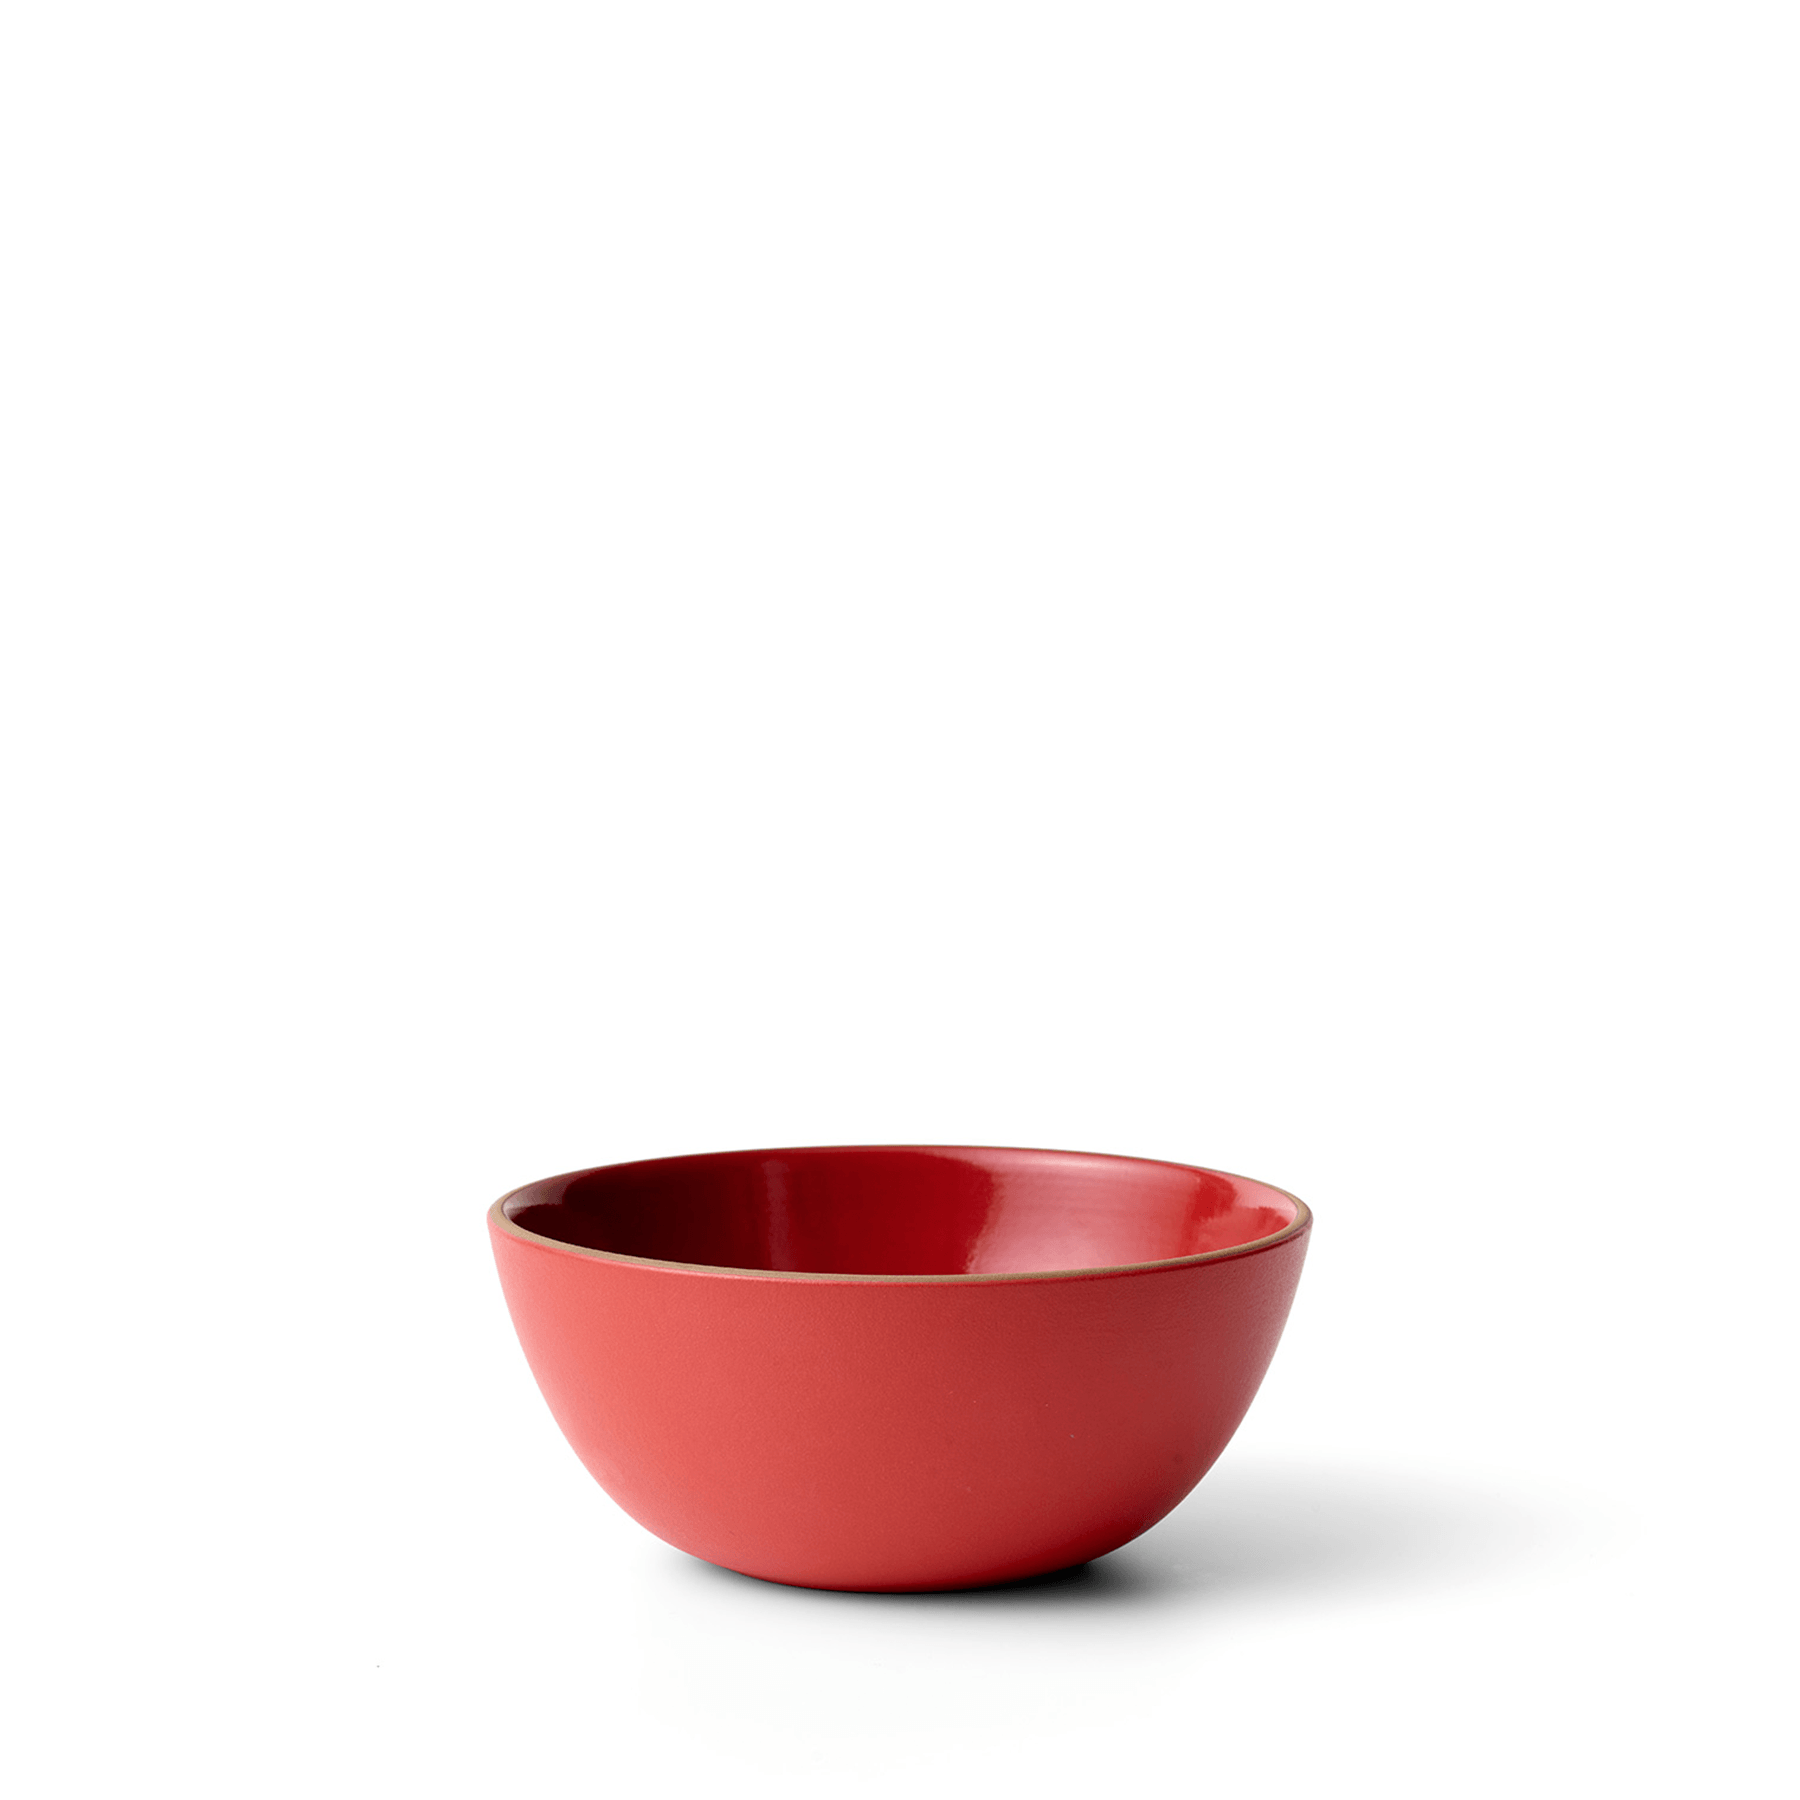 Vegetable Bowl in Ruby Red/Suede Red Zoom Image 1